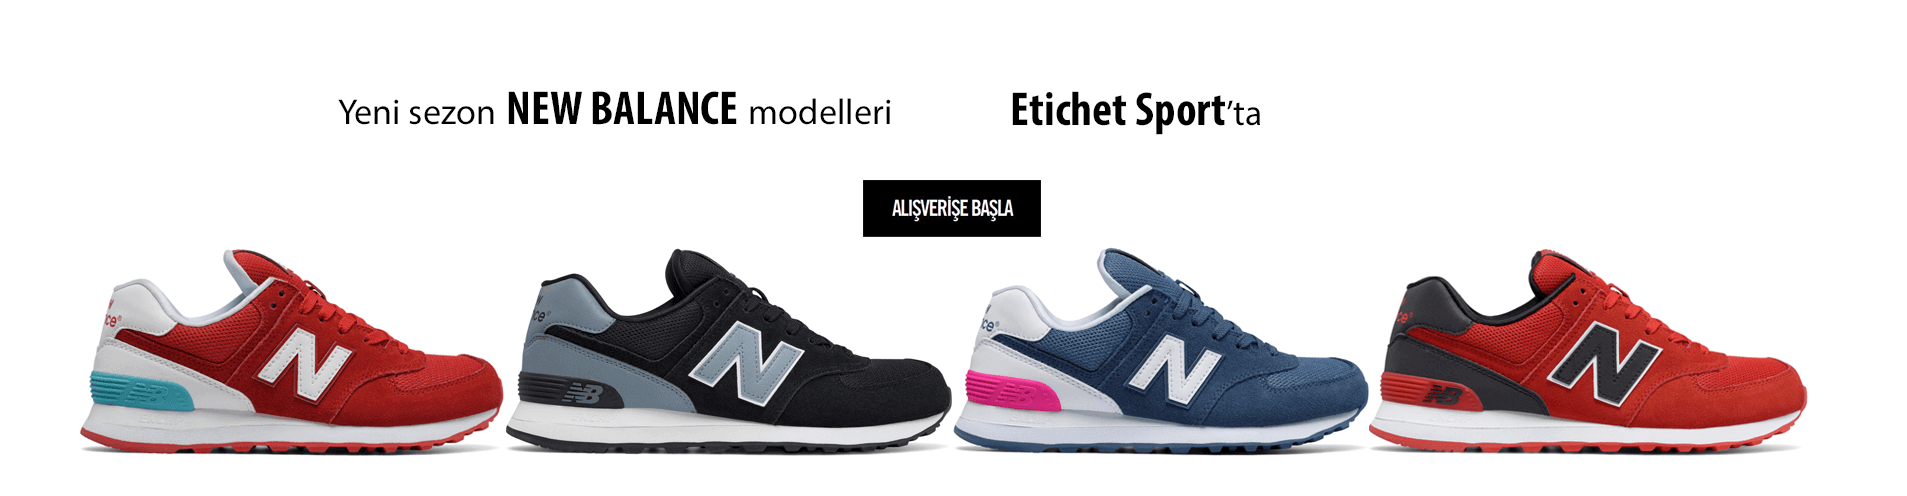 New Balance yeni sezon